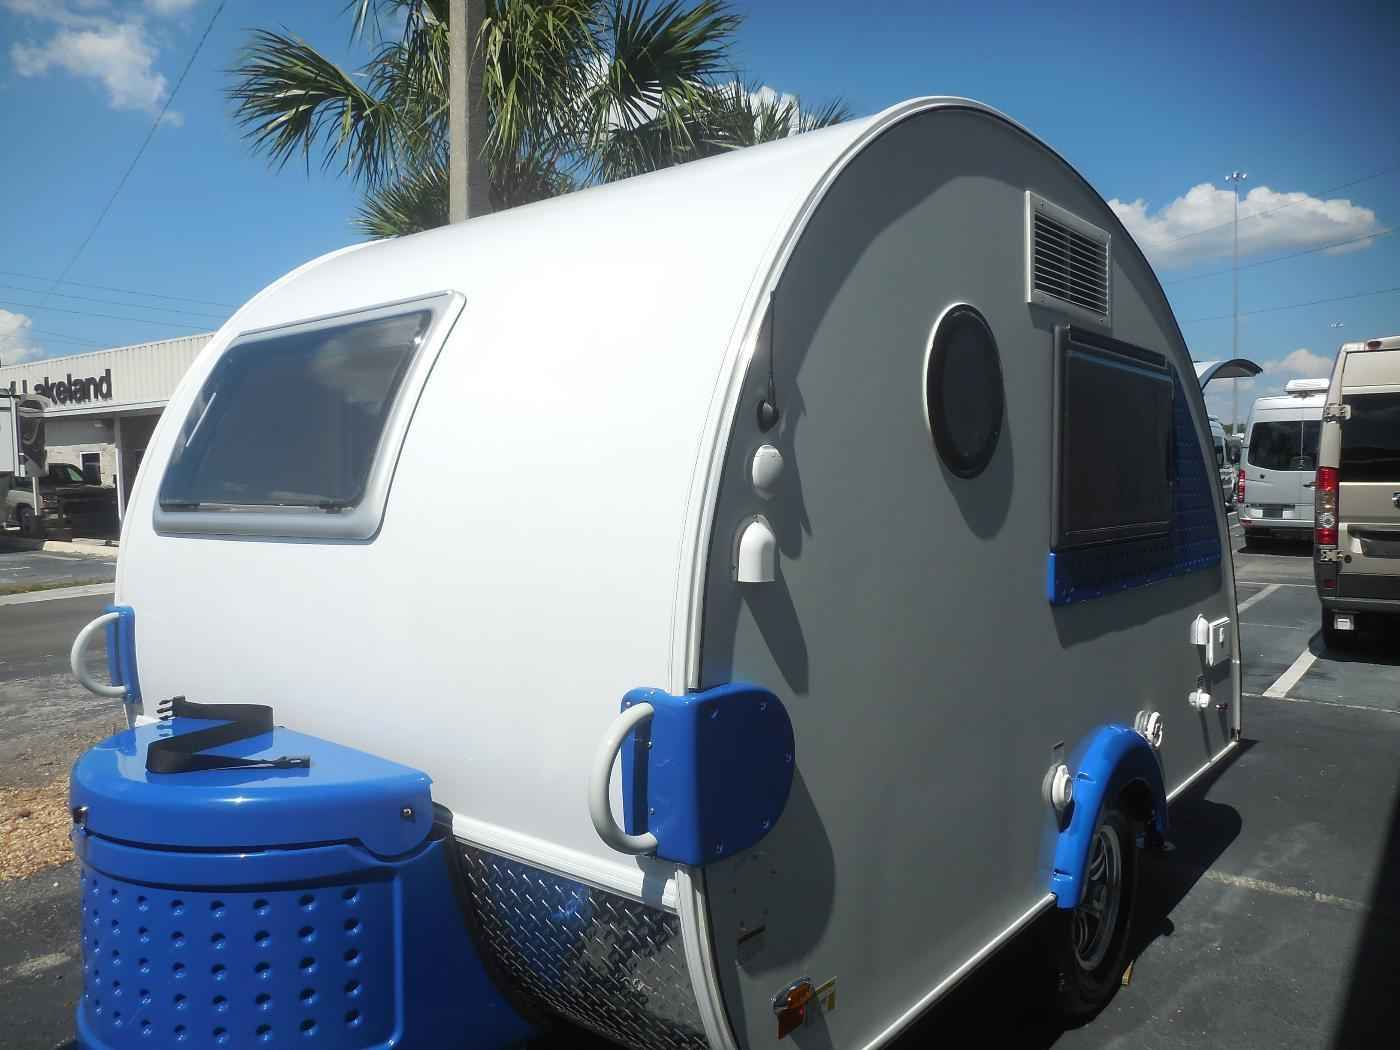 Vehicle New Nu Camp Tab Cs S Travel Trailer In Florida Fl A D B Df on Vin Number Location